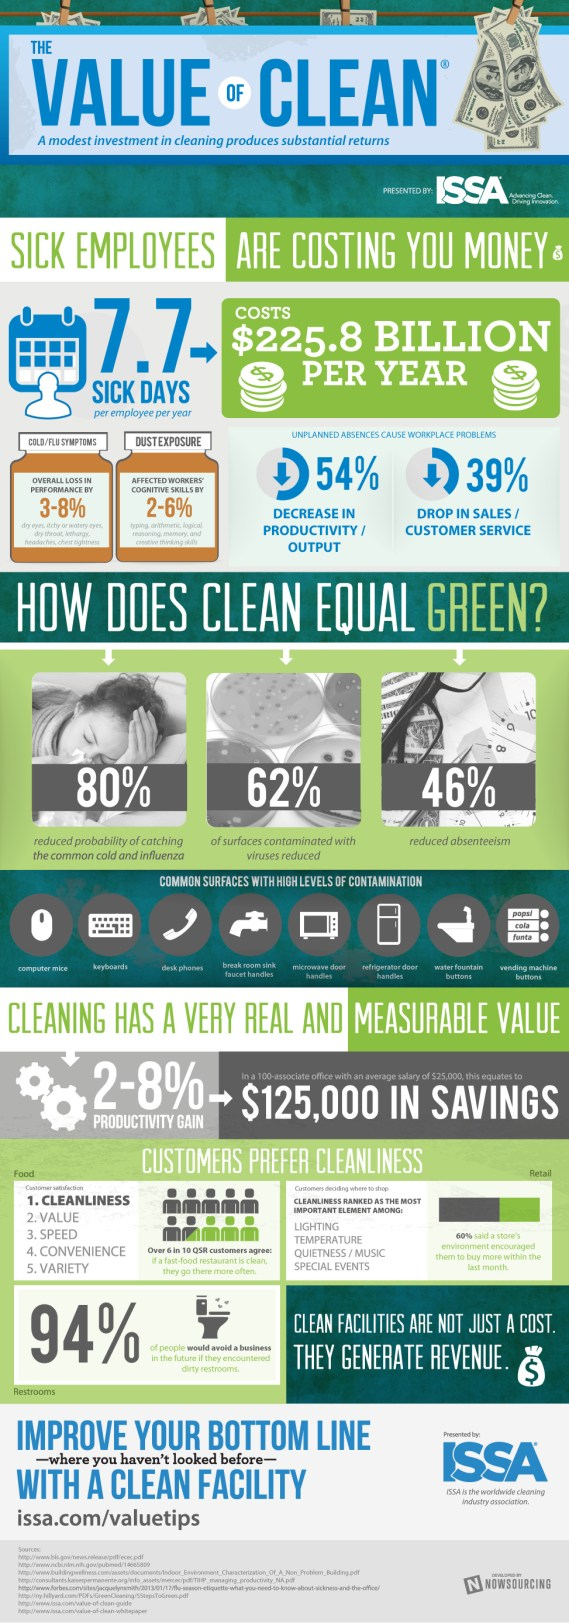 issa-value-clean-infographic